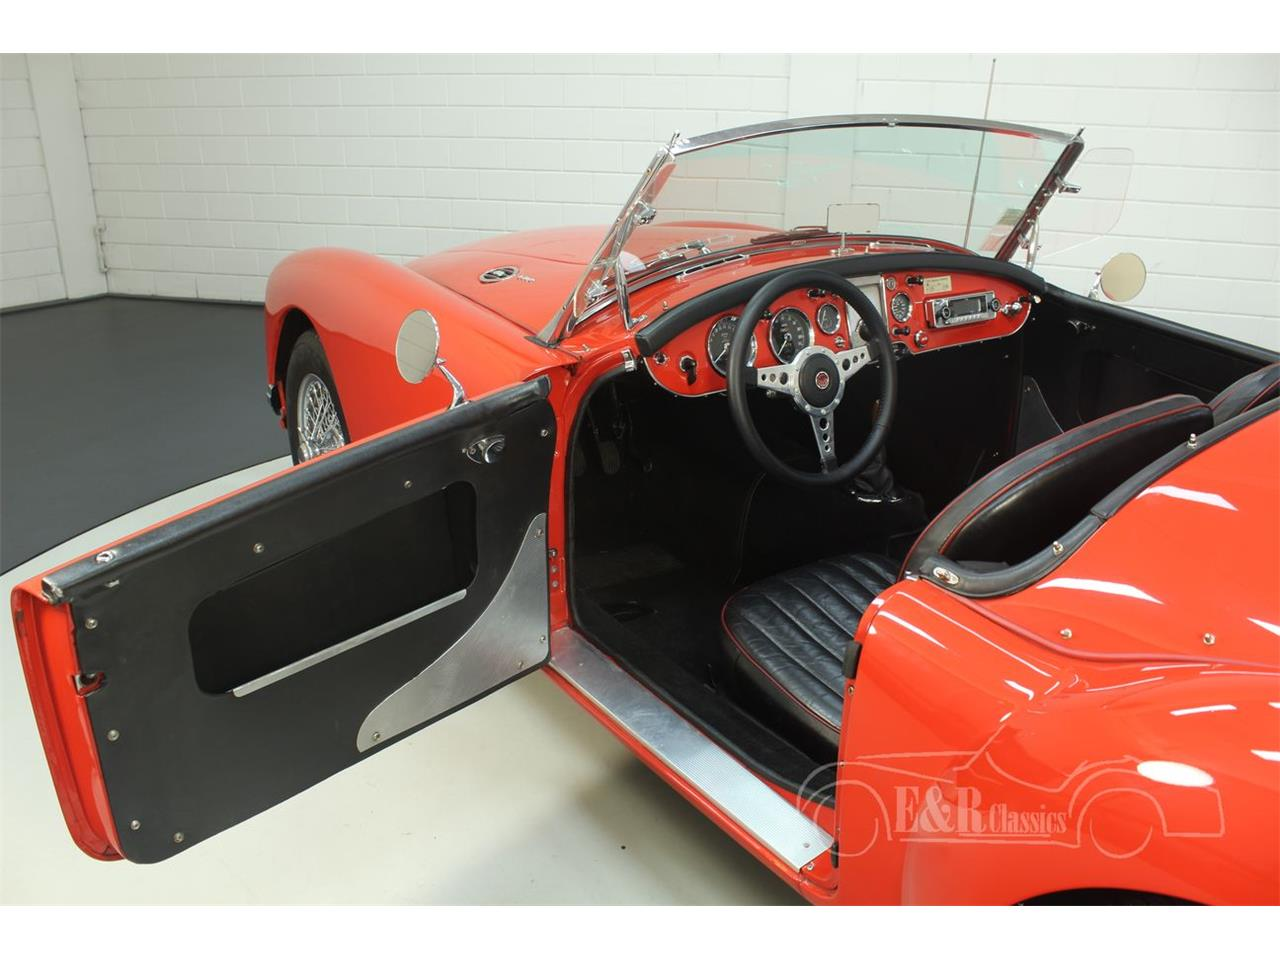 Large Picture of 1962 MG MGA located in Waalwijk Noord-Brabant - $45,000.00 - QKGO